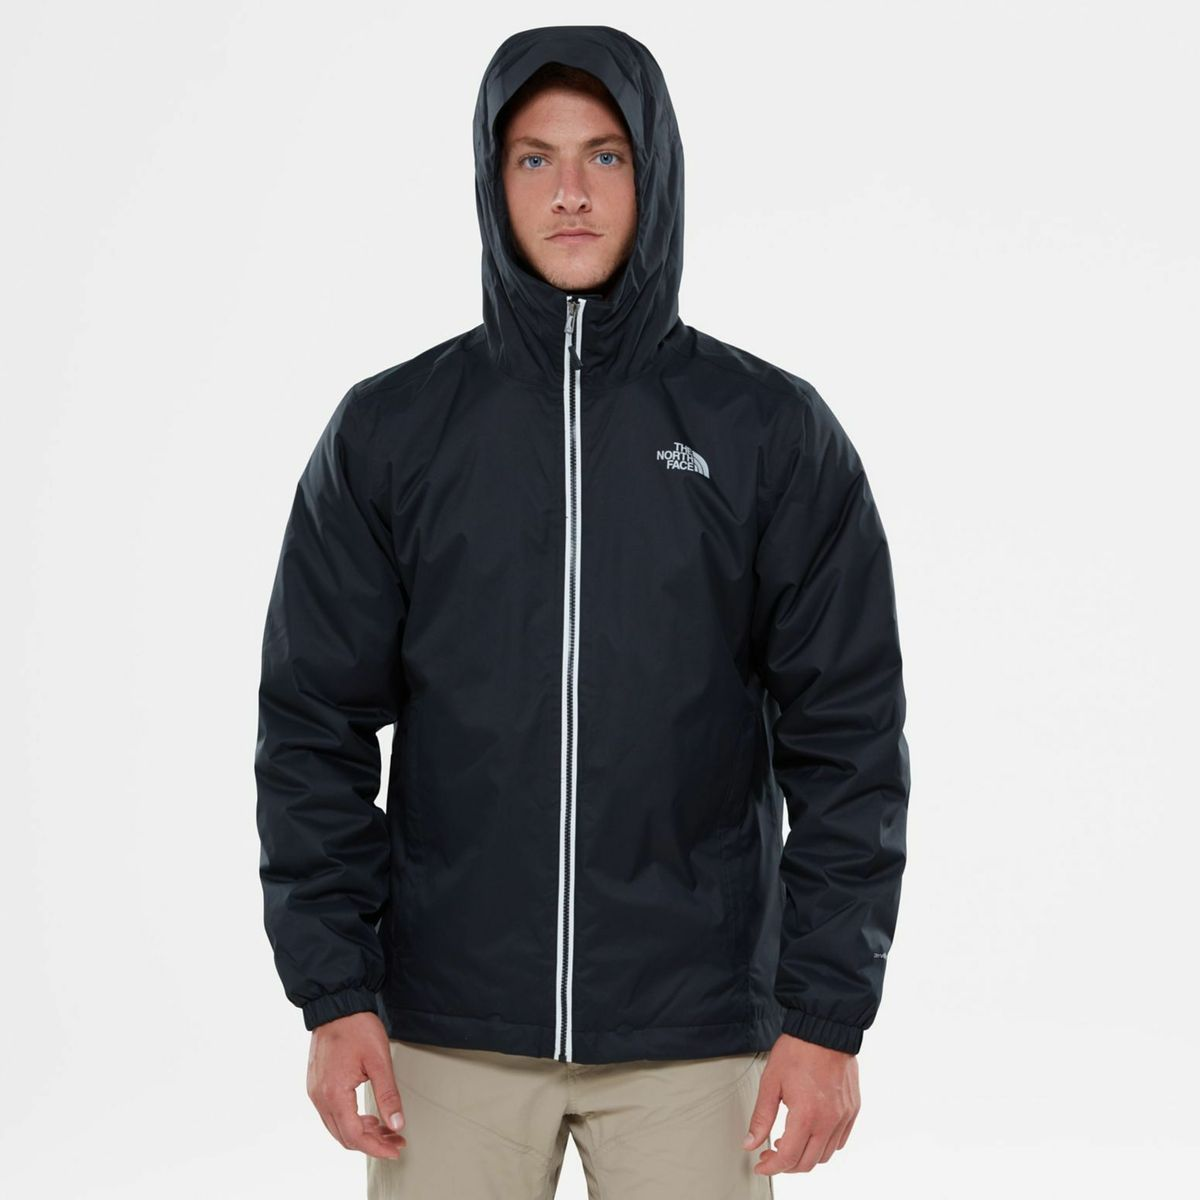 The North Face Quest Insulated Waterproof Hooded Men S Jacket Nwt Msrp 199 Regular L Tnf Black Jackets Men S Coats Jackets The North Face